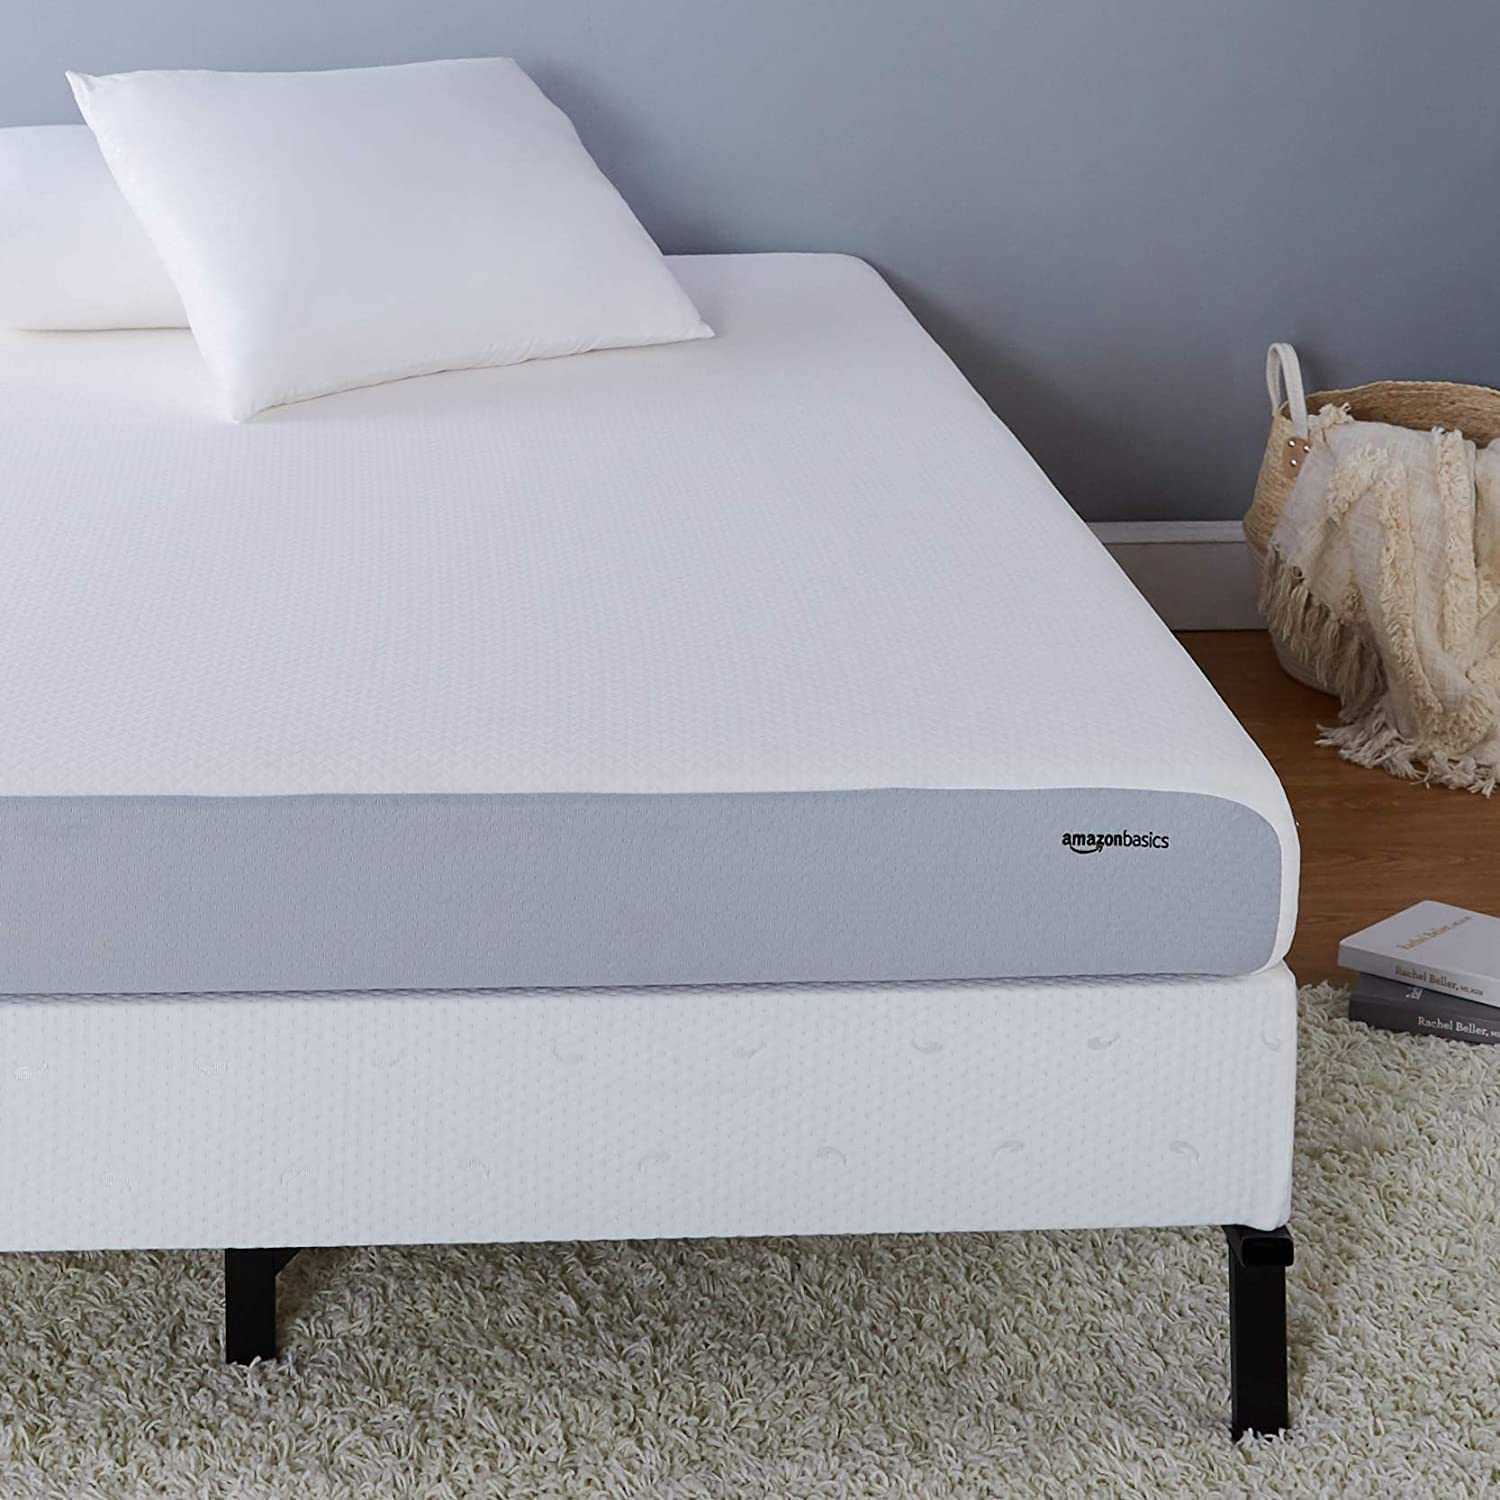 consumer reports best mattress for side sleepers